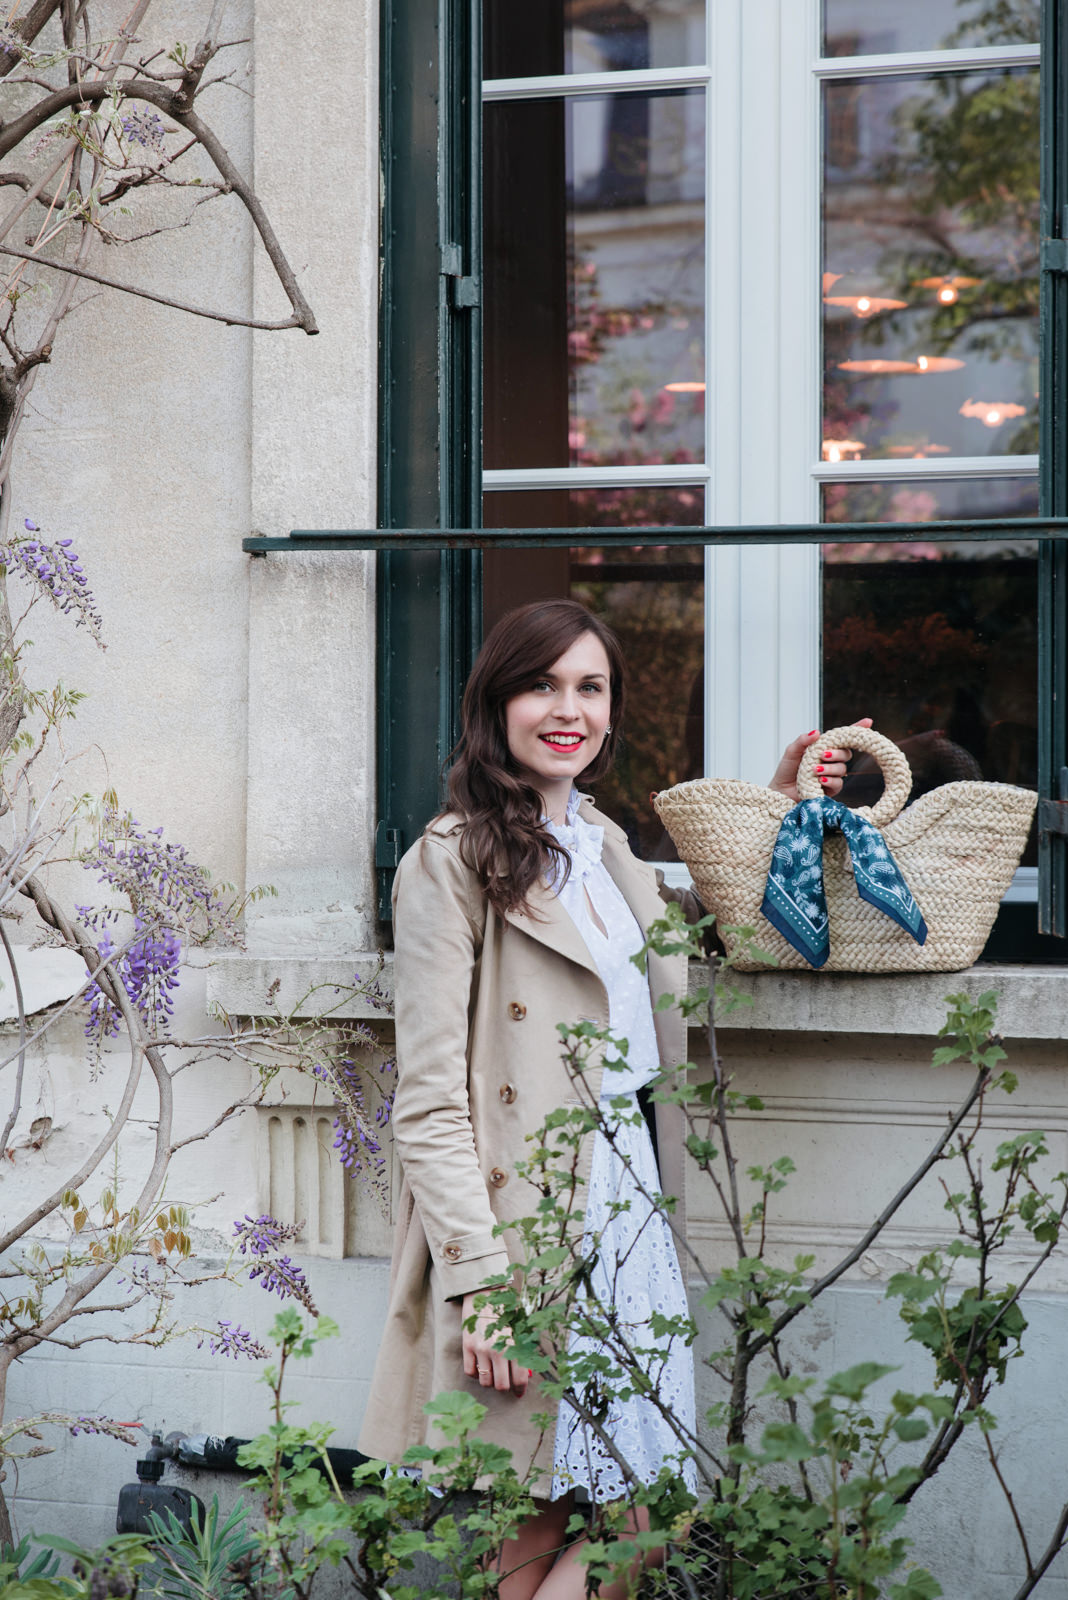 Blog-Mode-And-The-City-Lifestyle-Maison-Montmartre-My-Little-Paris-4